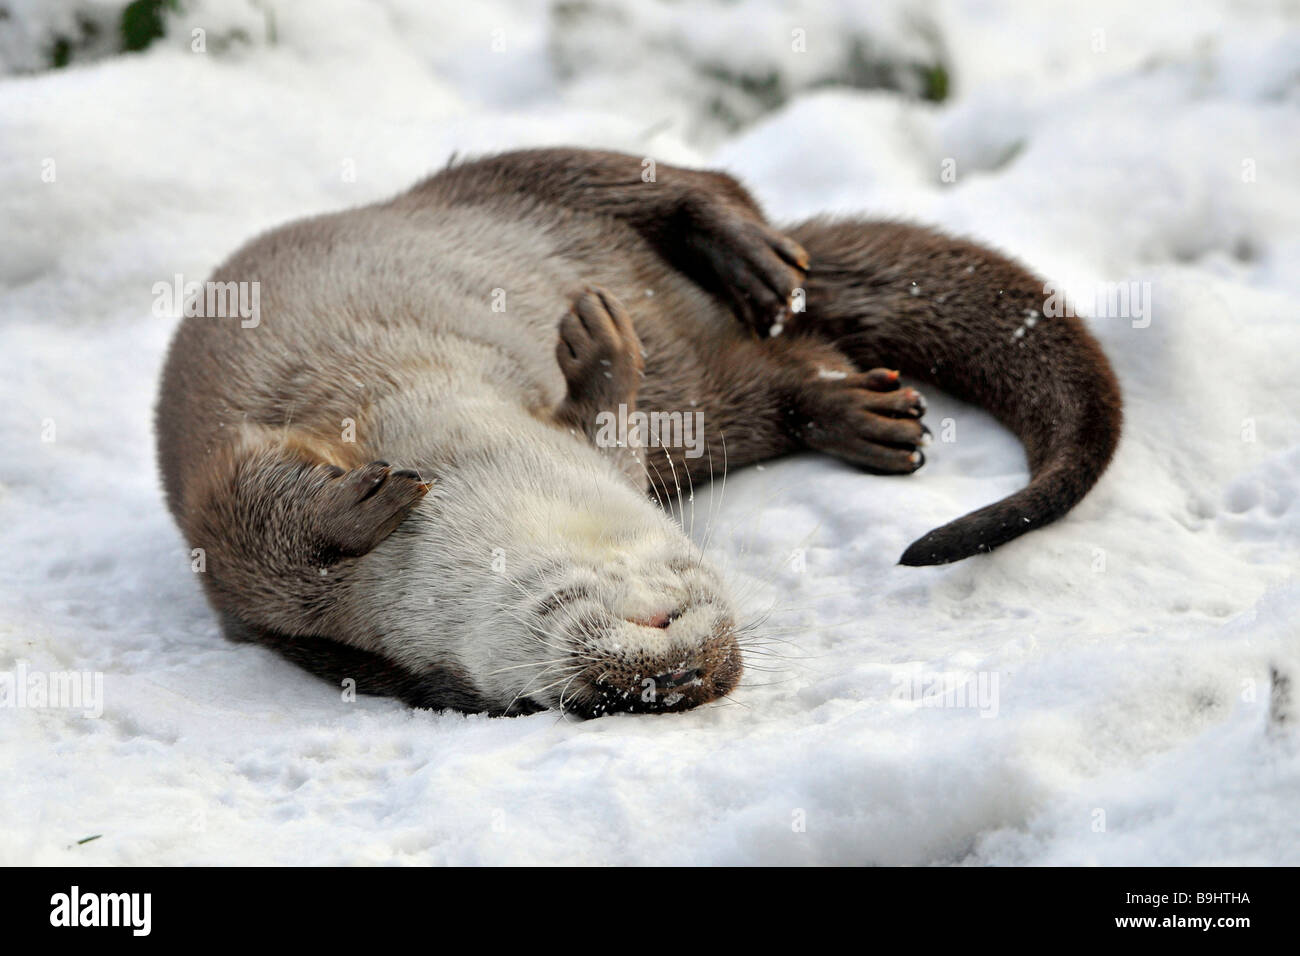 European Otter (Lutra lutra), playing in the snow - Stock Image